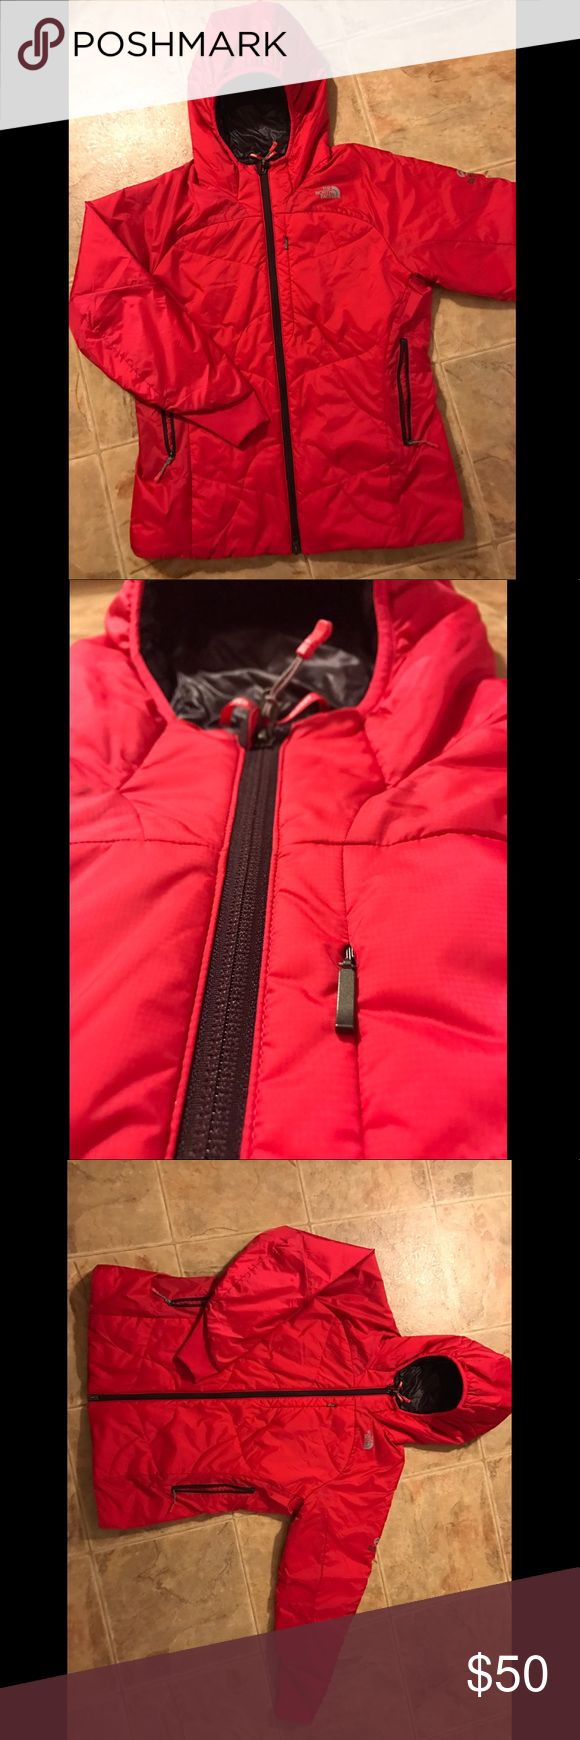 Cute red north face women's winter jacket ! #stripes #forever #winter #Christmas #greyshirt #simple #cute #fun #layering #ootd #fresh #sexy #autumn #shirt #longsleeve #beautiful #vintage #sweater #forever21 #californialove #fashion #style #hipster #young #spring #mini #cute #girly #rue21 #21 #young #outfitoftheday #sexy #hot #kyliejenner #taylorswift #formal #simple #northface #thenorthface #jackets North Face Jackets & Coats Puffers